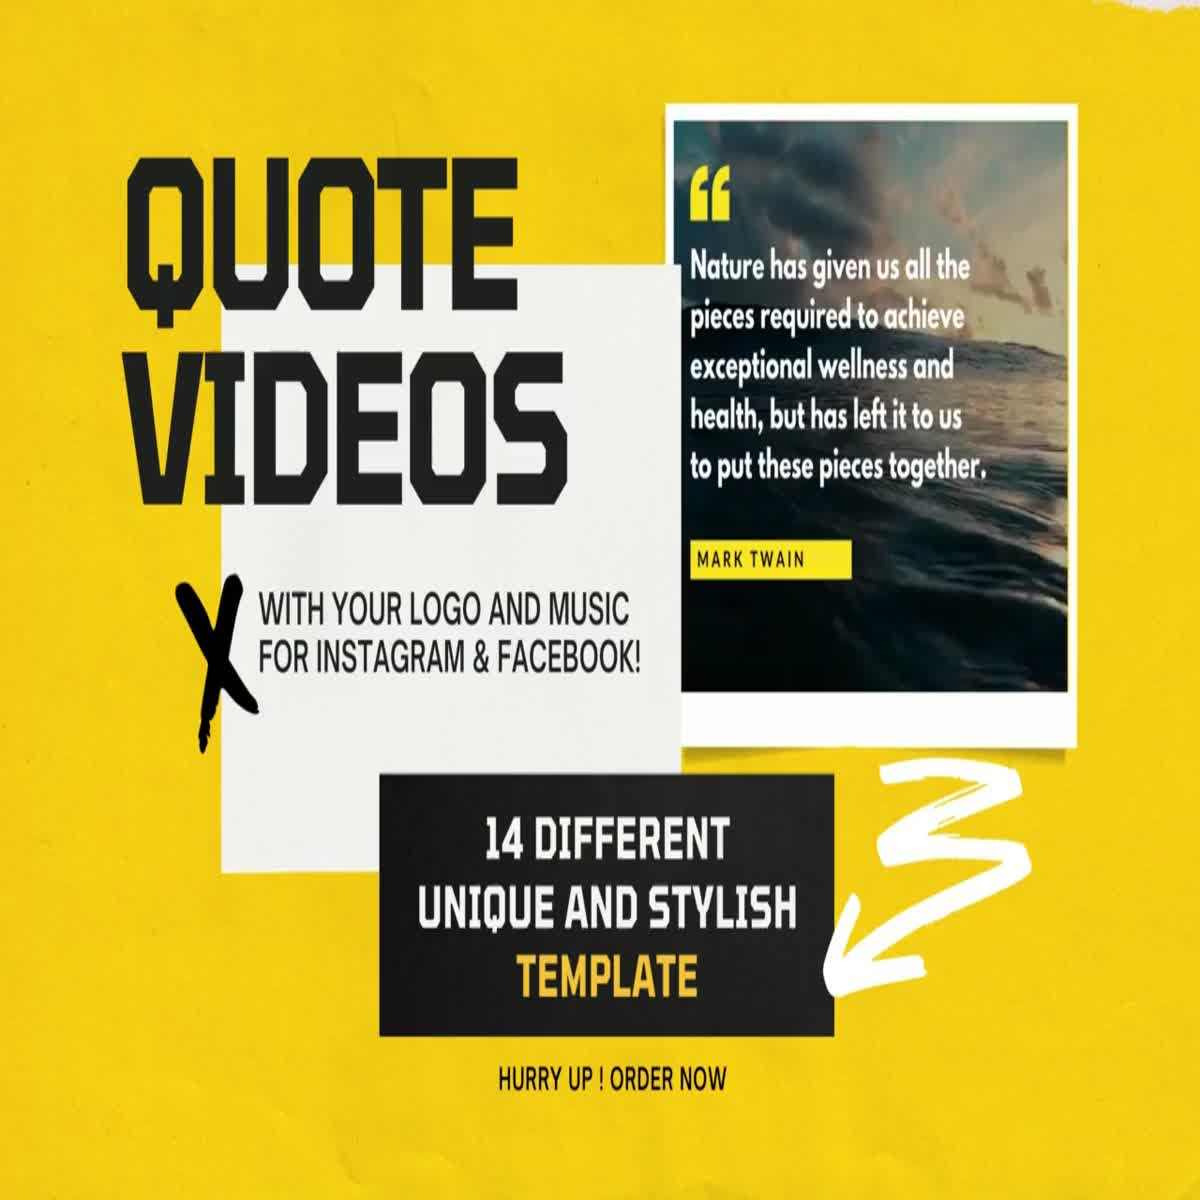 I will create motivational quotes videos for instagram with music and your logo